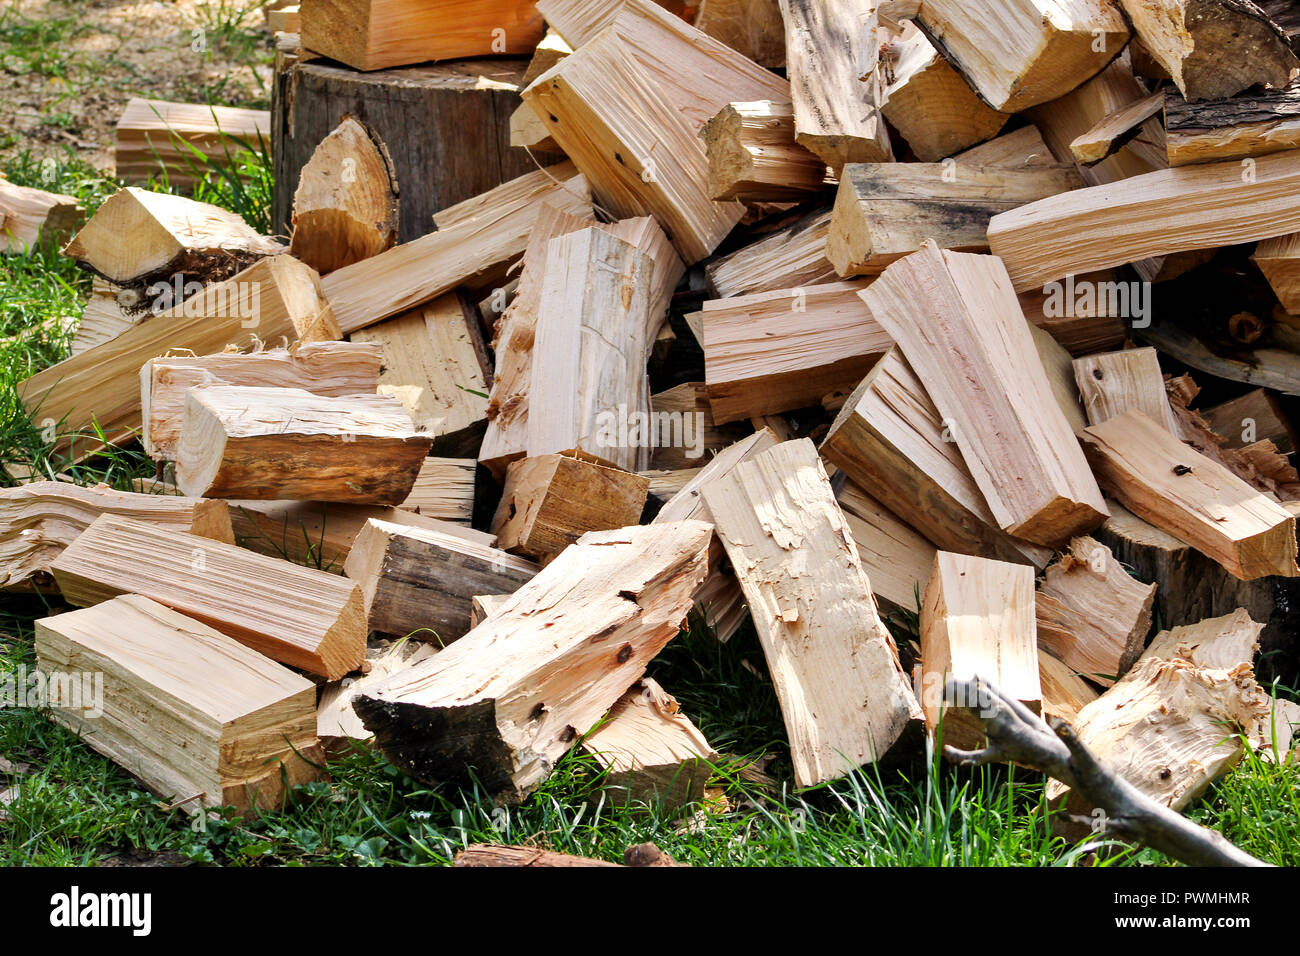 A pile of chopped firewood logs ready for the winter. Cut logs fire wood. Hardwood, wood and lumber industry. Heating season, winter season. Renewable Stock Photo